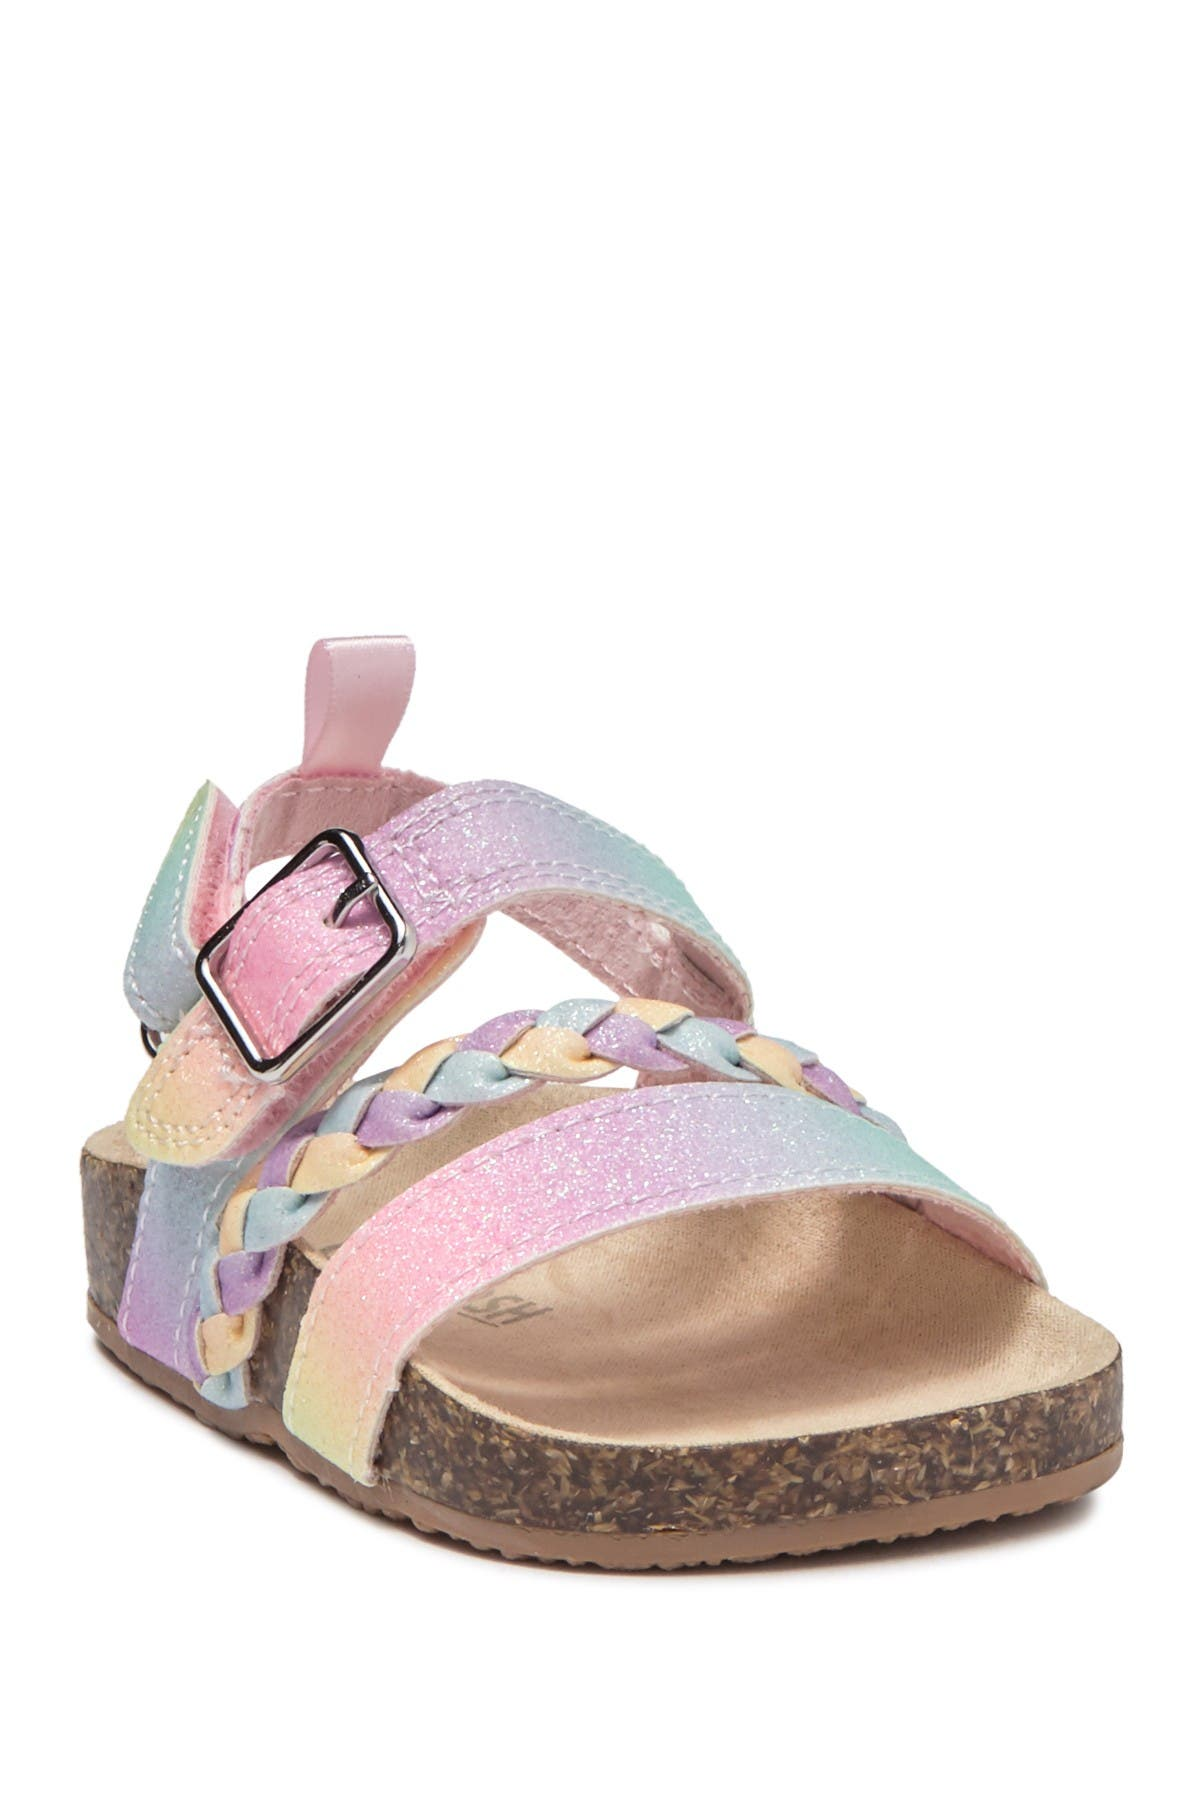 Image of OshKosh Faith Sandal